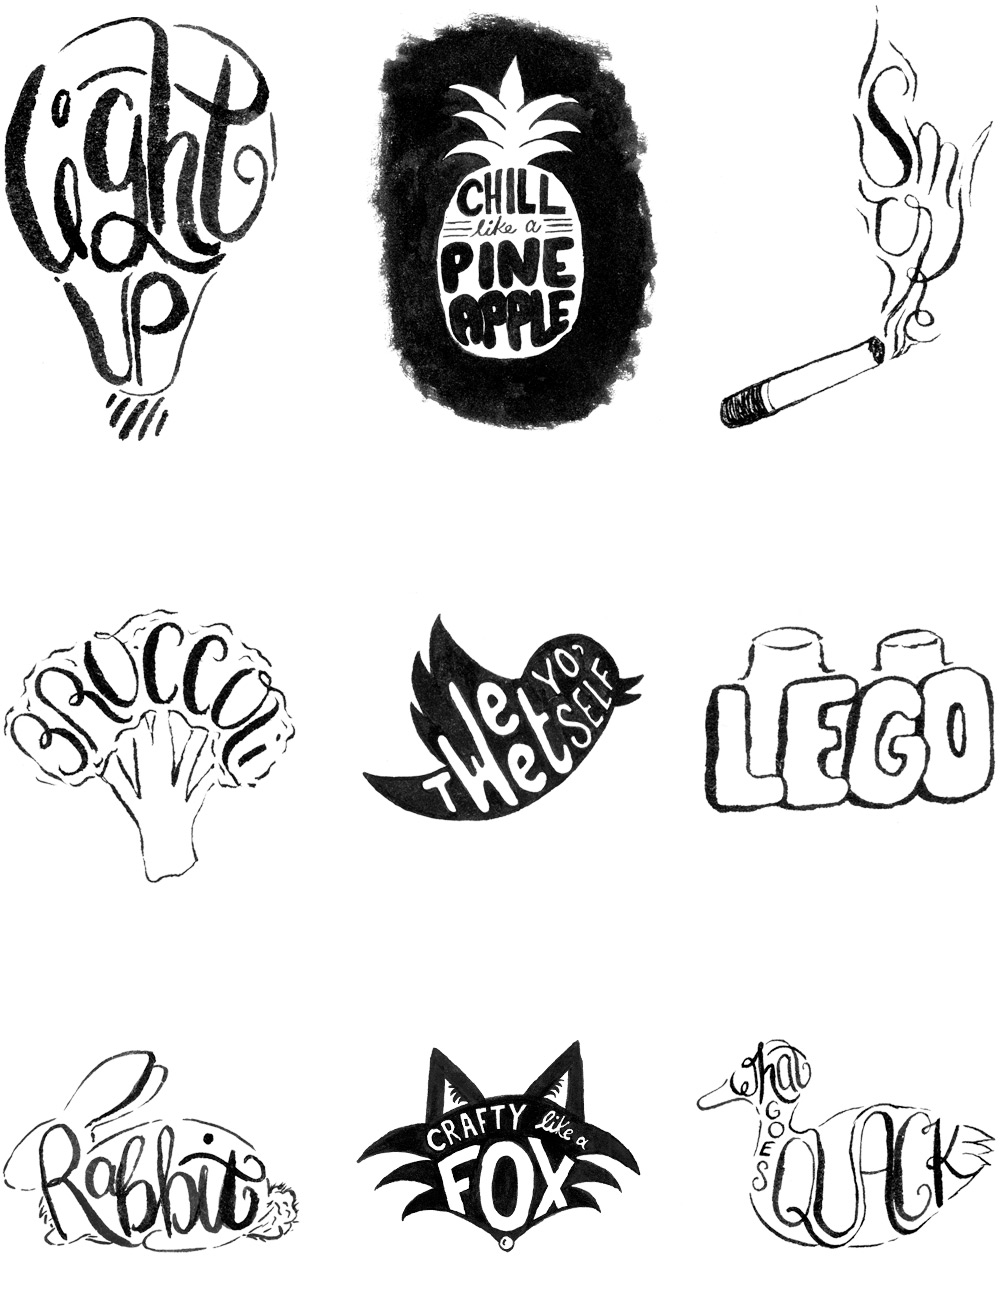 Instagram Lettering Project - Words in Shapes